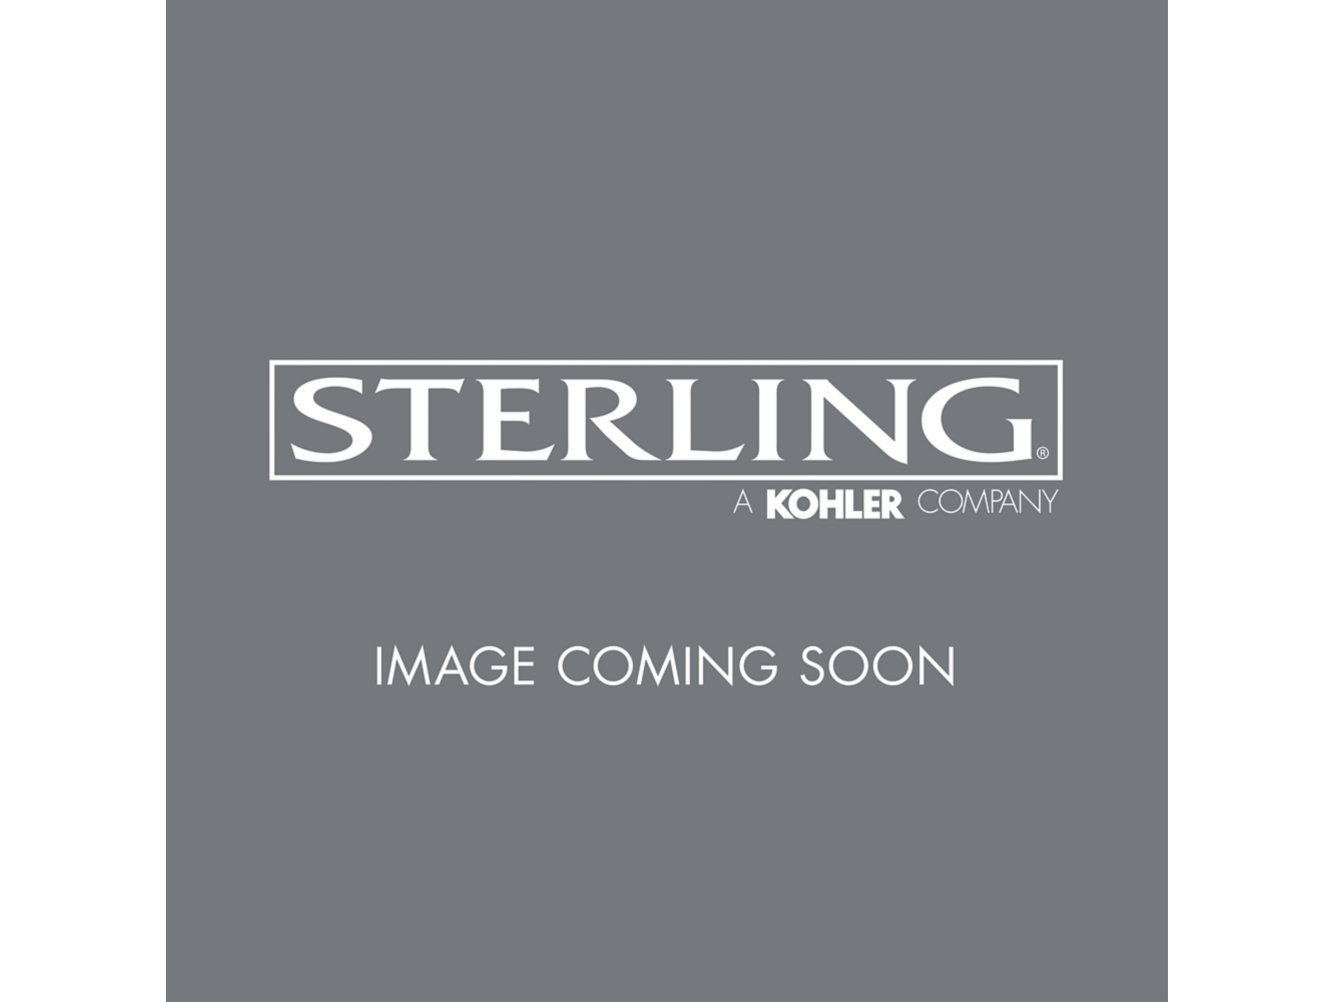 Ludington under mount single bowl kitchen sink with accessories 32 x 18 5 16 x 9 9 16 20022 pc na sterling